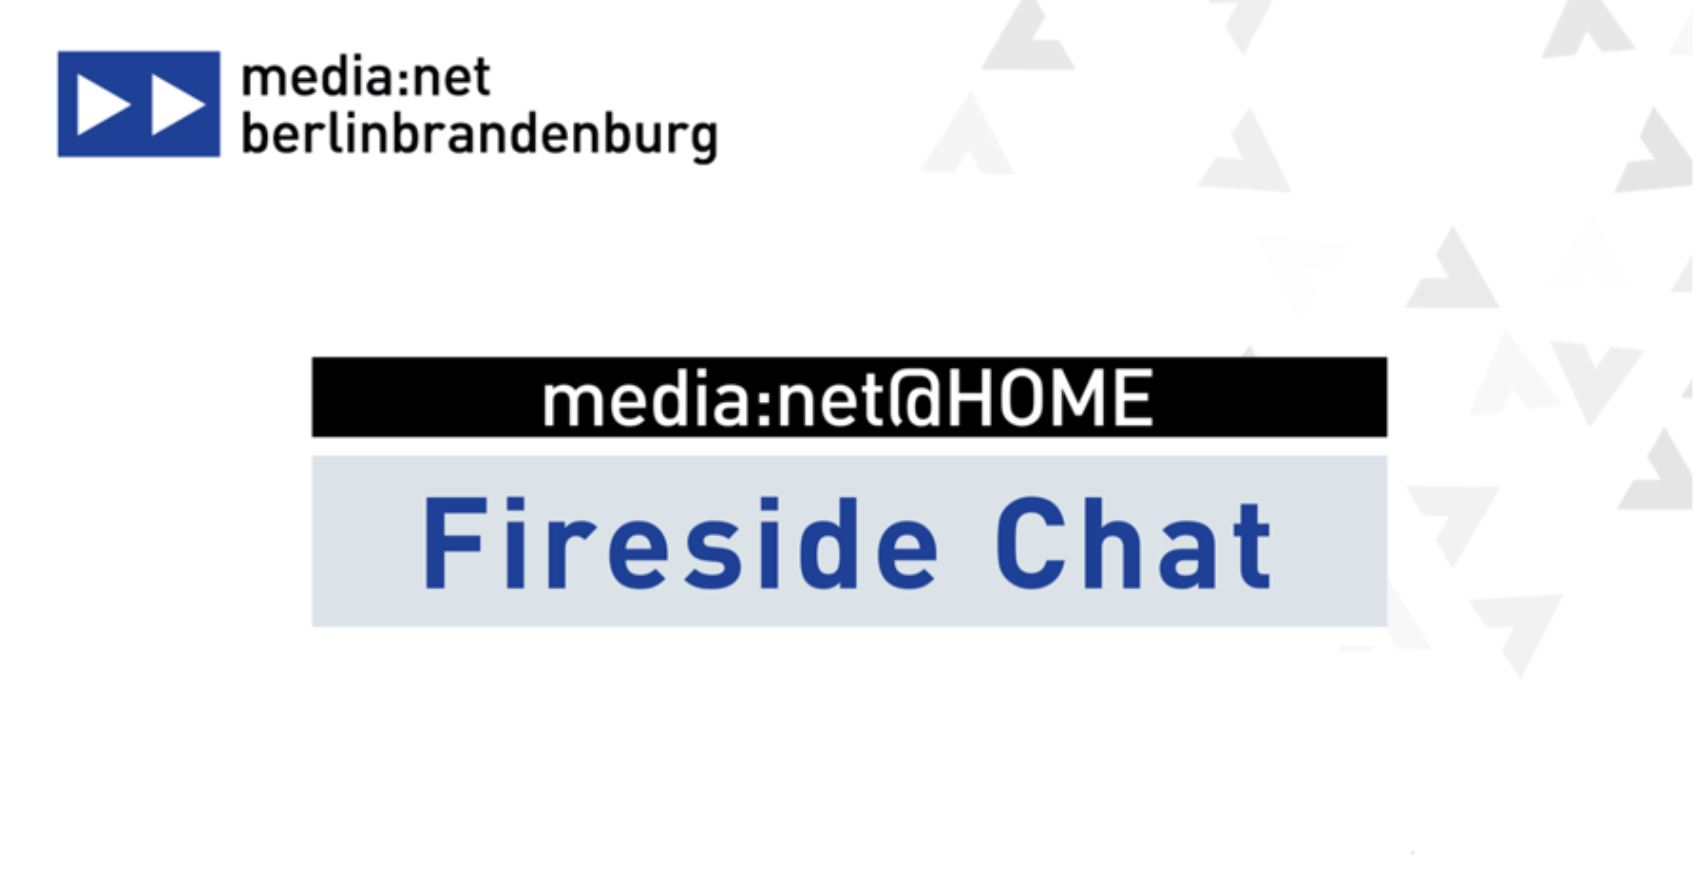 Media:net Fire Side Chat